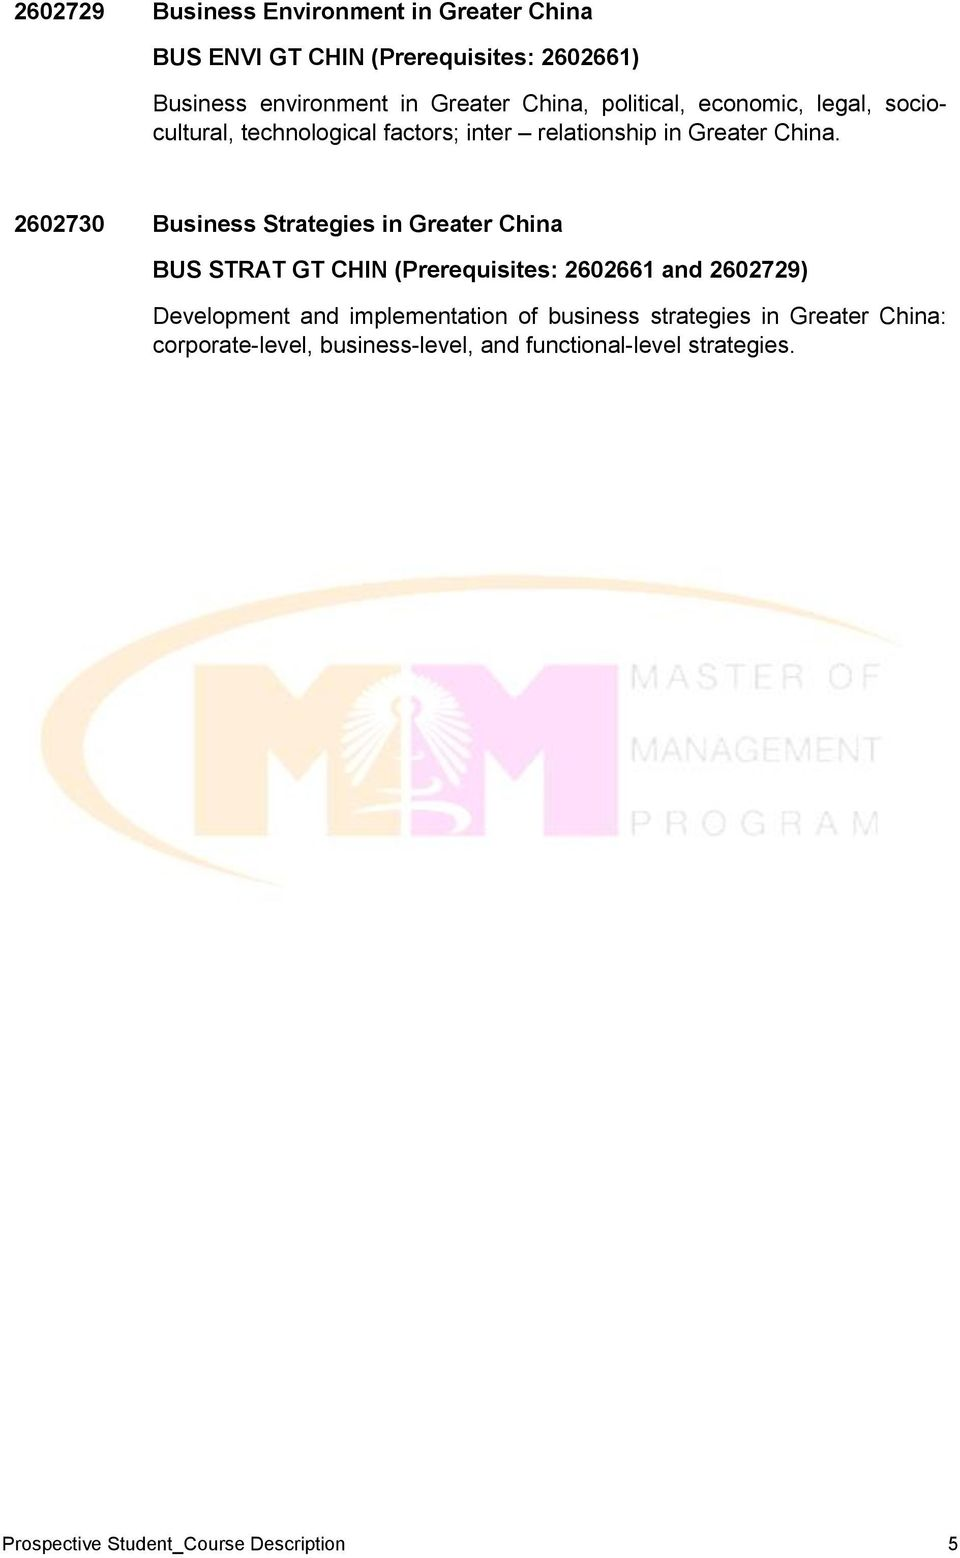 2602730 Business Strategies in Greater China BUS STRAT GT CHIN (Prerequisites: 2602661 and 2602729) Development and